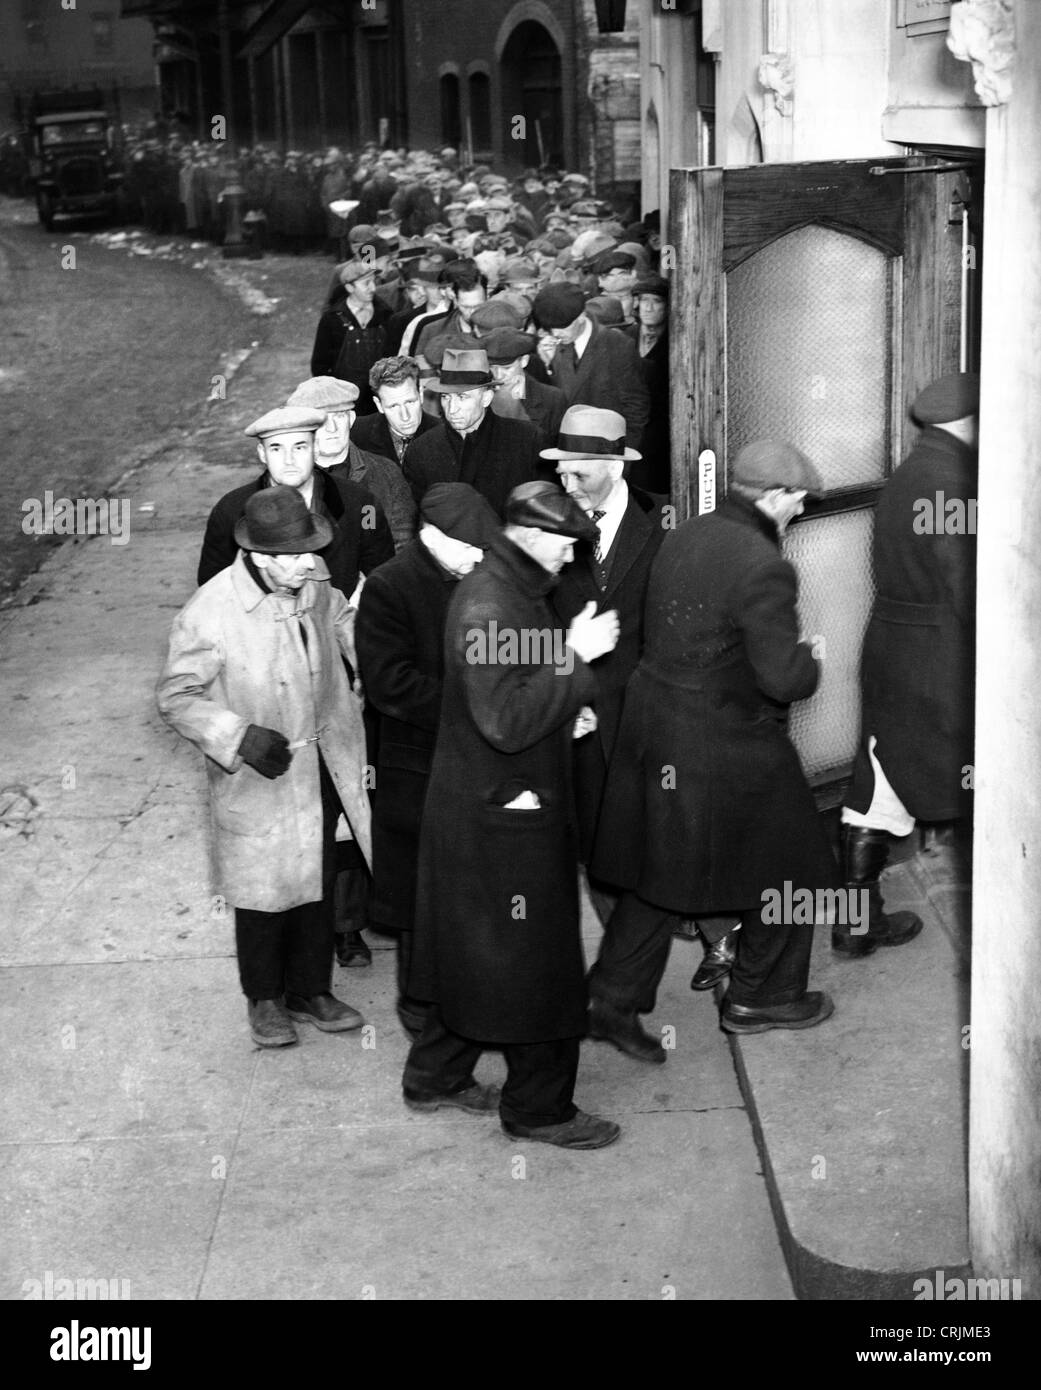 Men waiting on bread line during the Depression - Stock Image